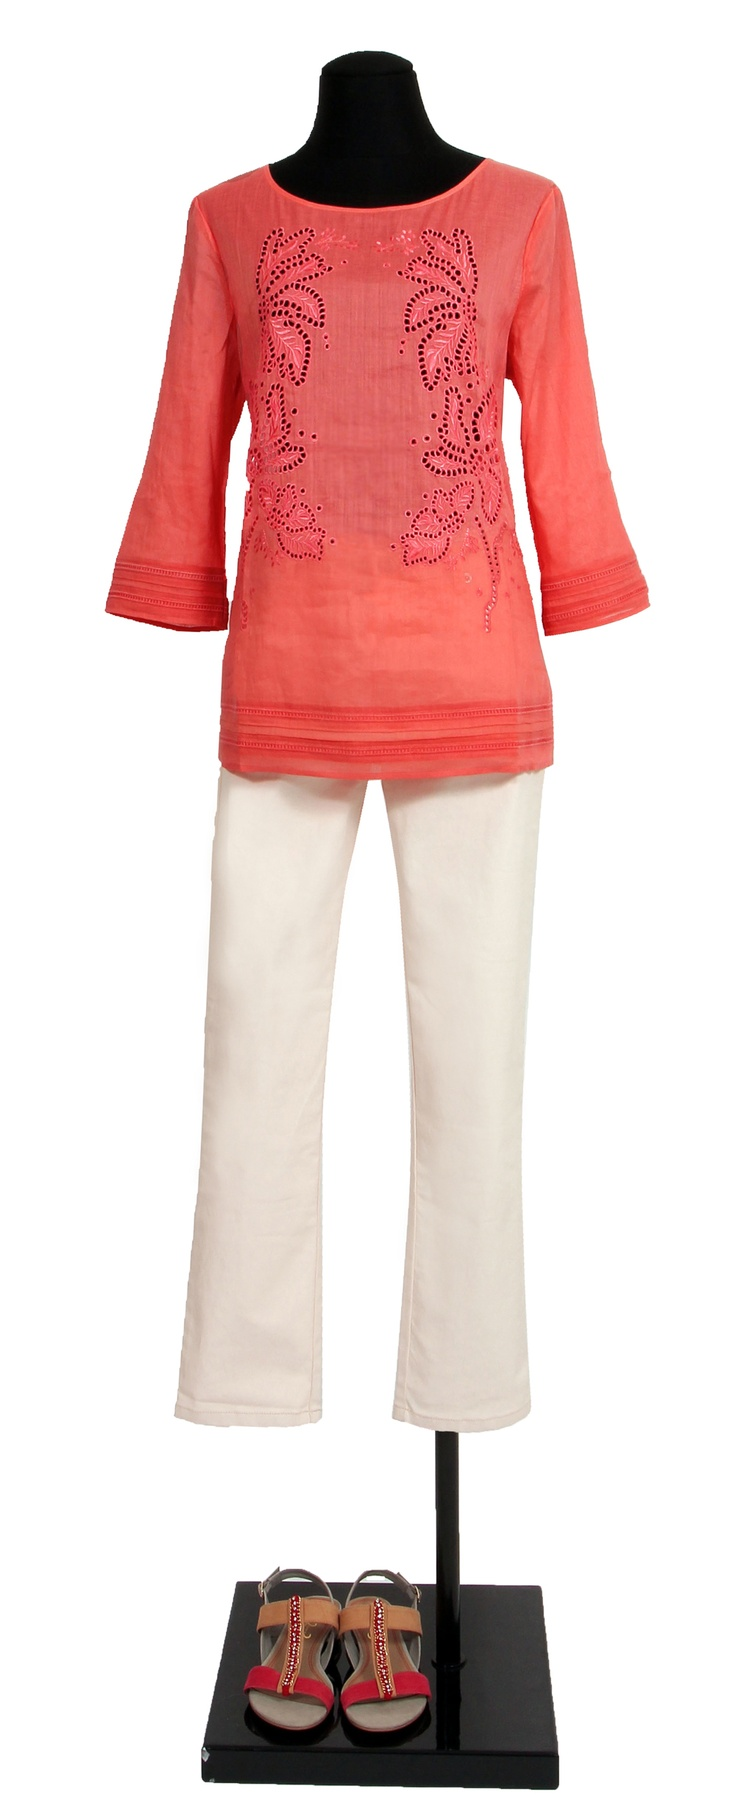 1.2.3 Paris - Blouse Laure 79€ Pantalon Domitille 89€ Chaussures Elvie 99€ #corail #blouse #sandales #broderies #123 #mode #printemps